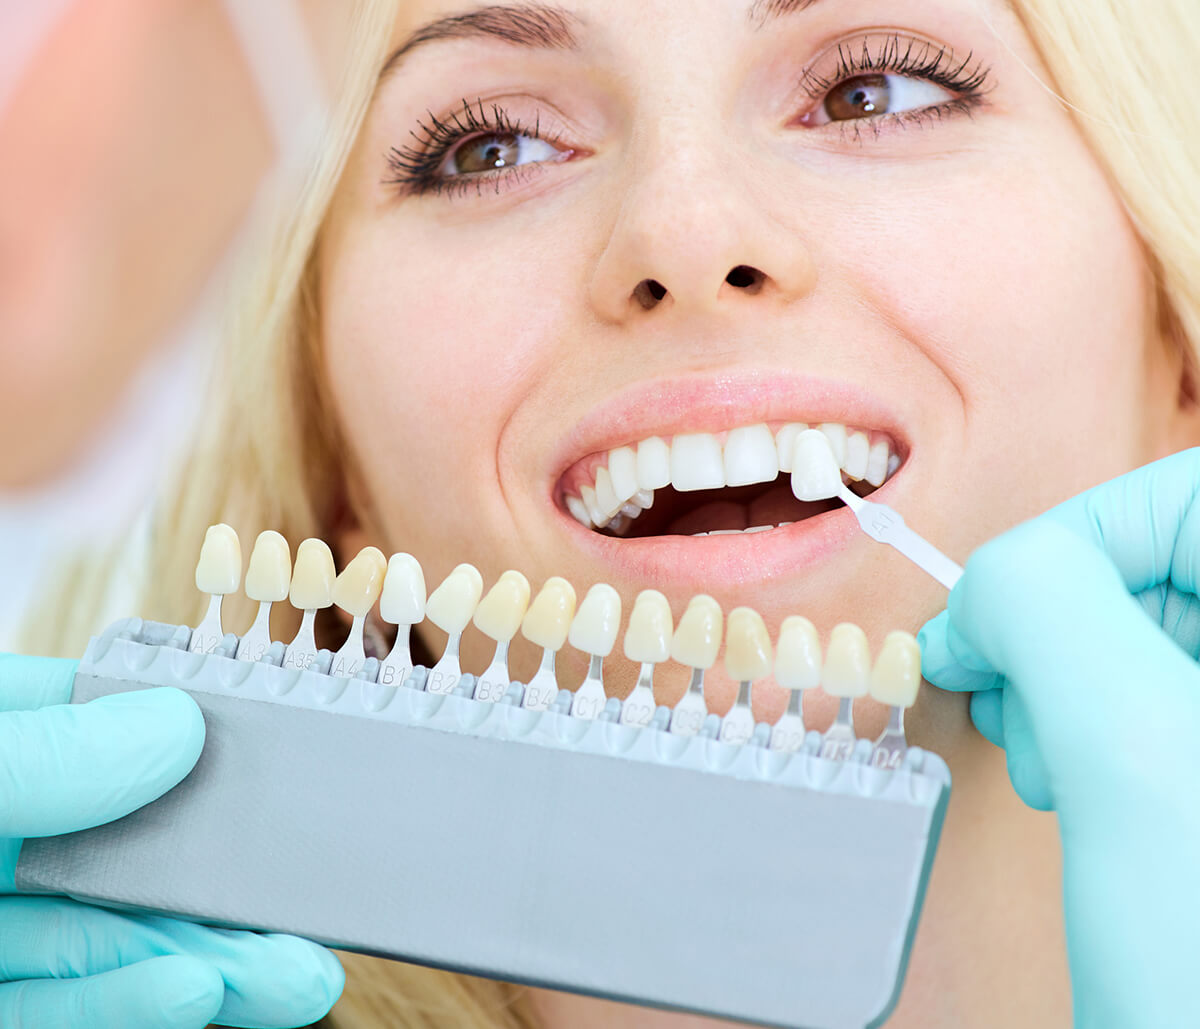 In London, ON Area, Dentist Explains About Porcelain Veneers and What Makes Someone a Suitable Candidate